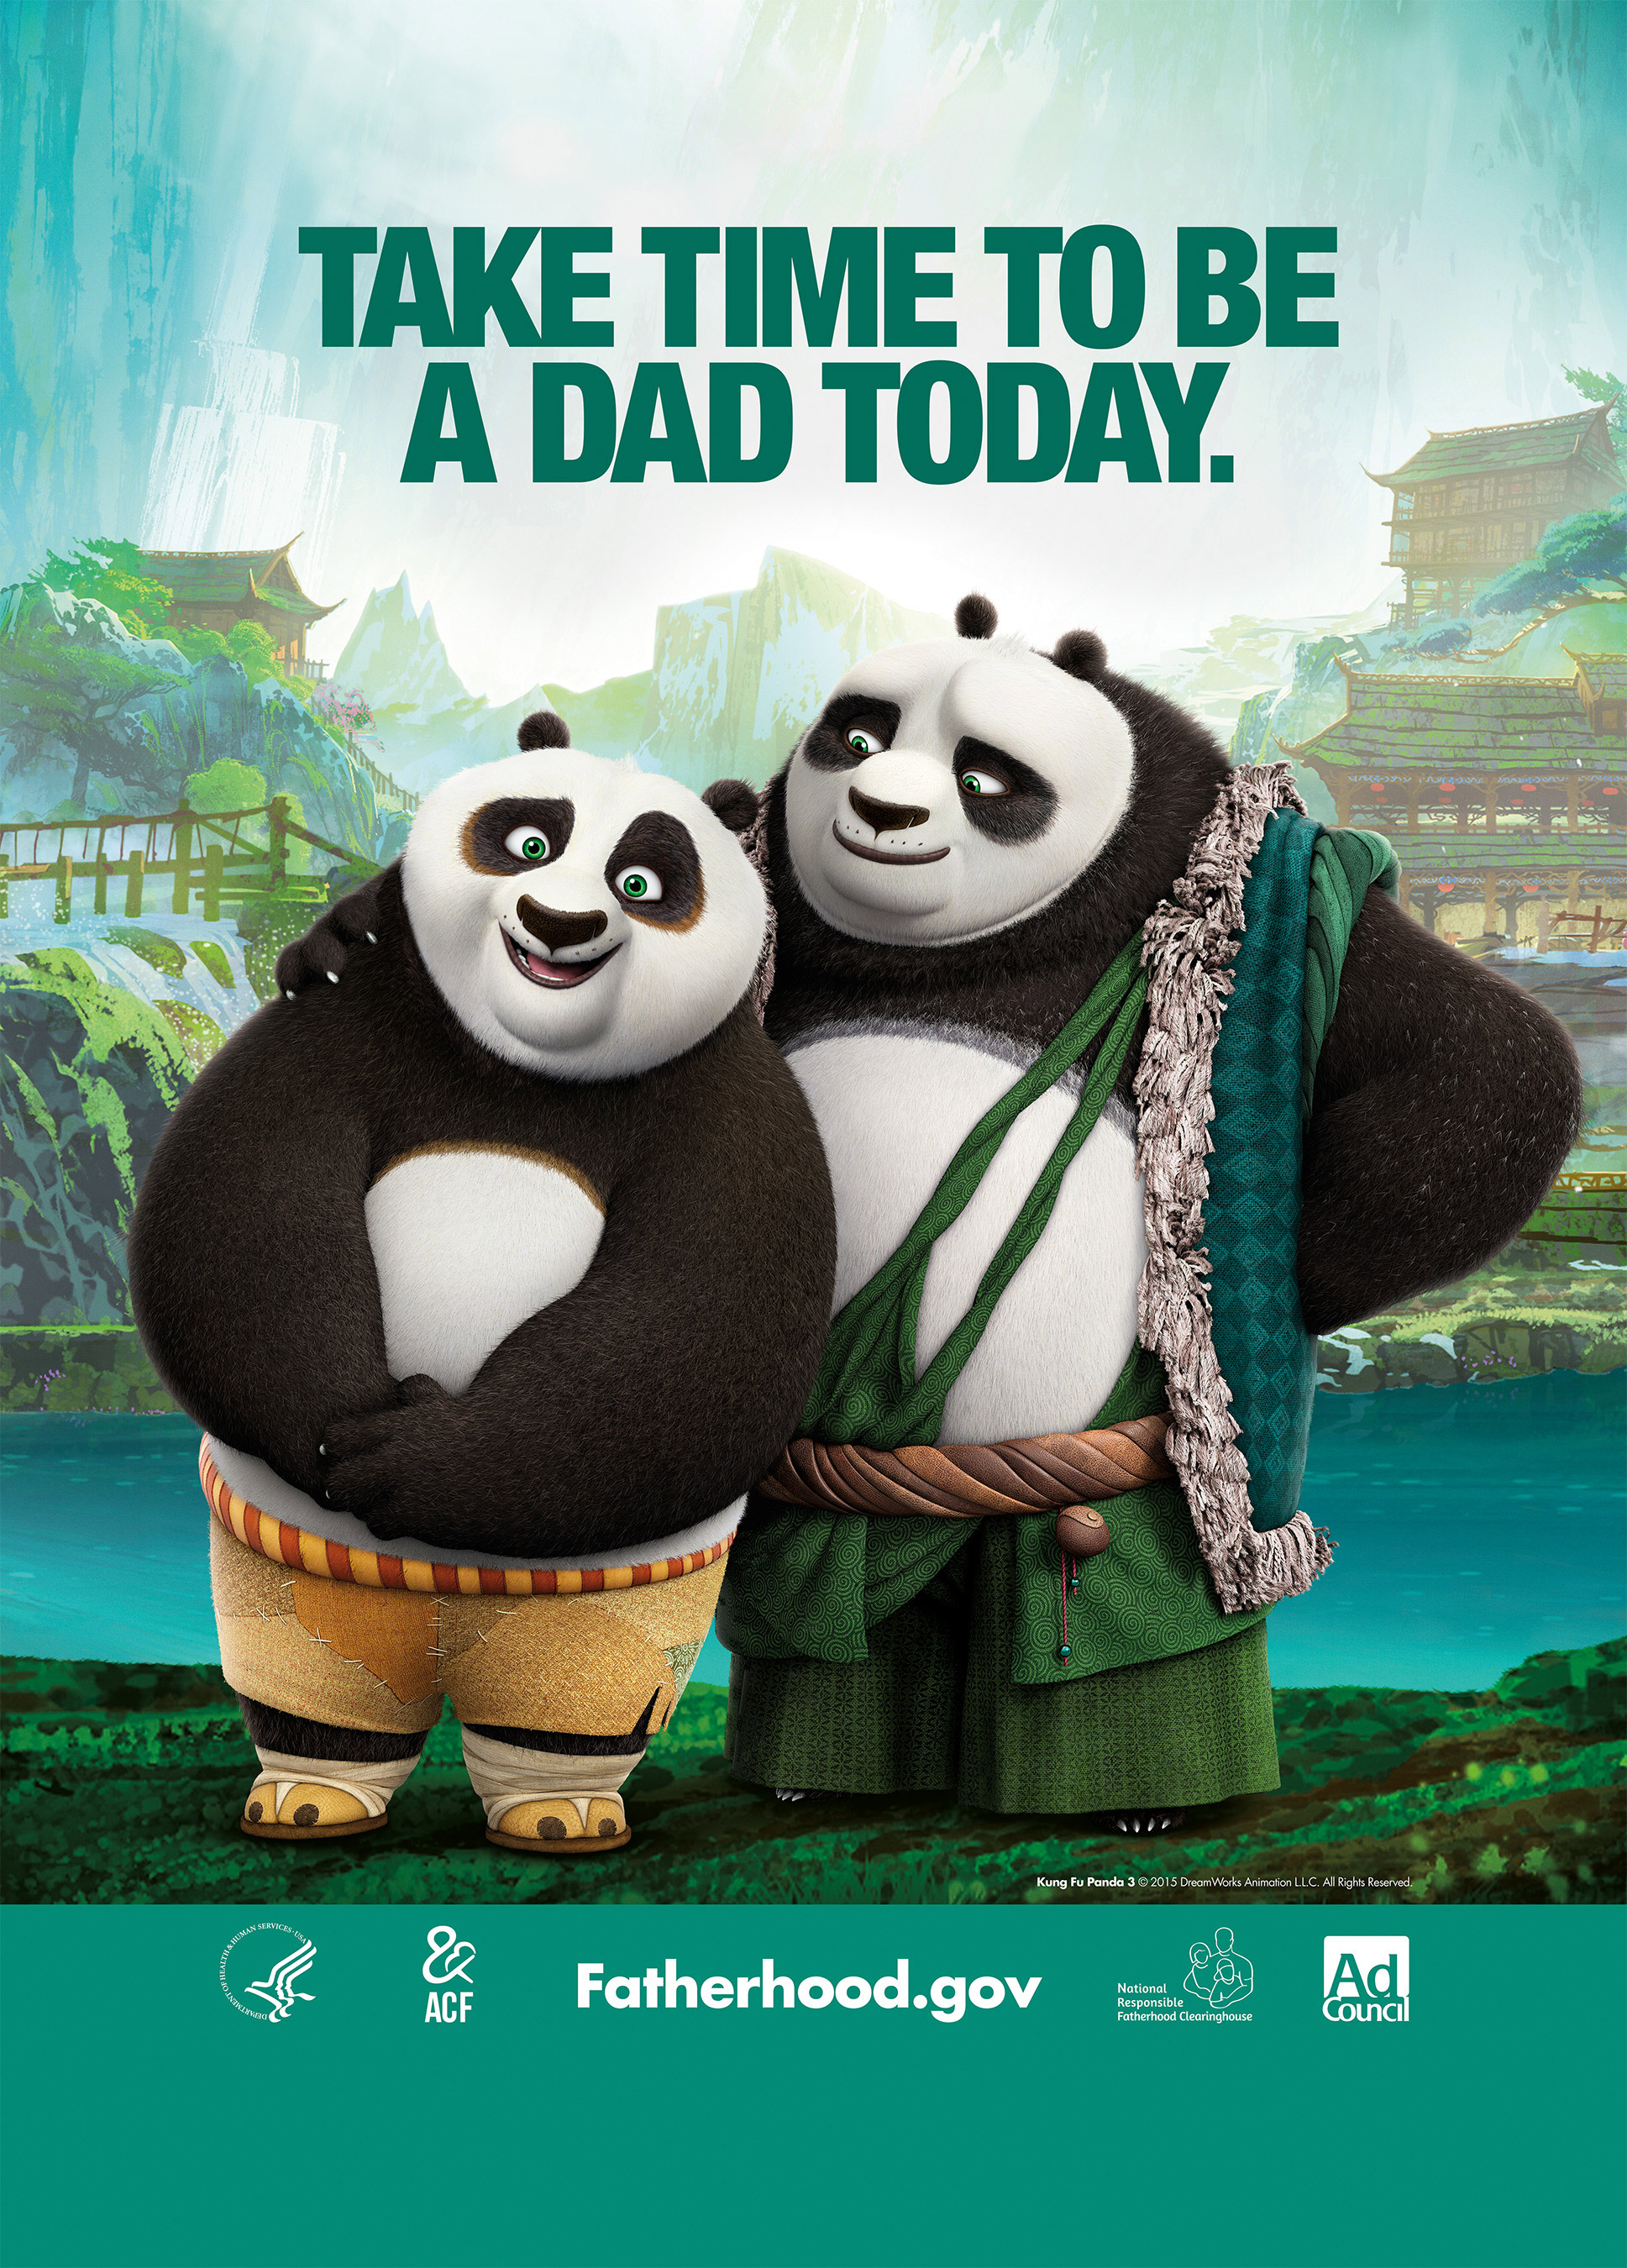 """Yo! My son and I checked out Kung Fu Panda 3 this weekend. To all the Fathers out there this movie is for us!Swaggerdad gives this movie a """"Thumb's up""""Also, Our friend's over at Fatherhood.gov have some words of advice I'd like to share with you.Remember, it's never too late to break the cycle and be present in your child's life."""